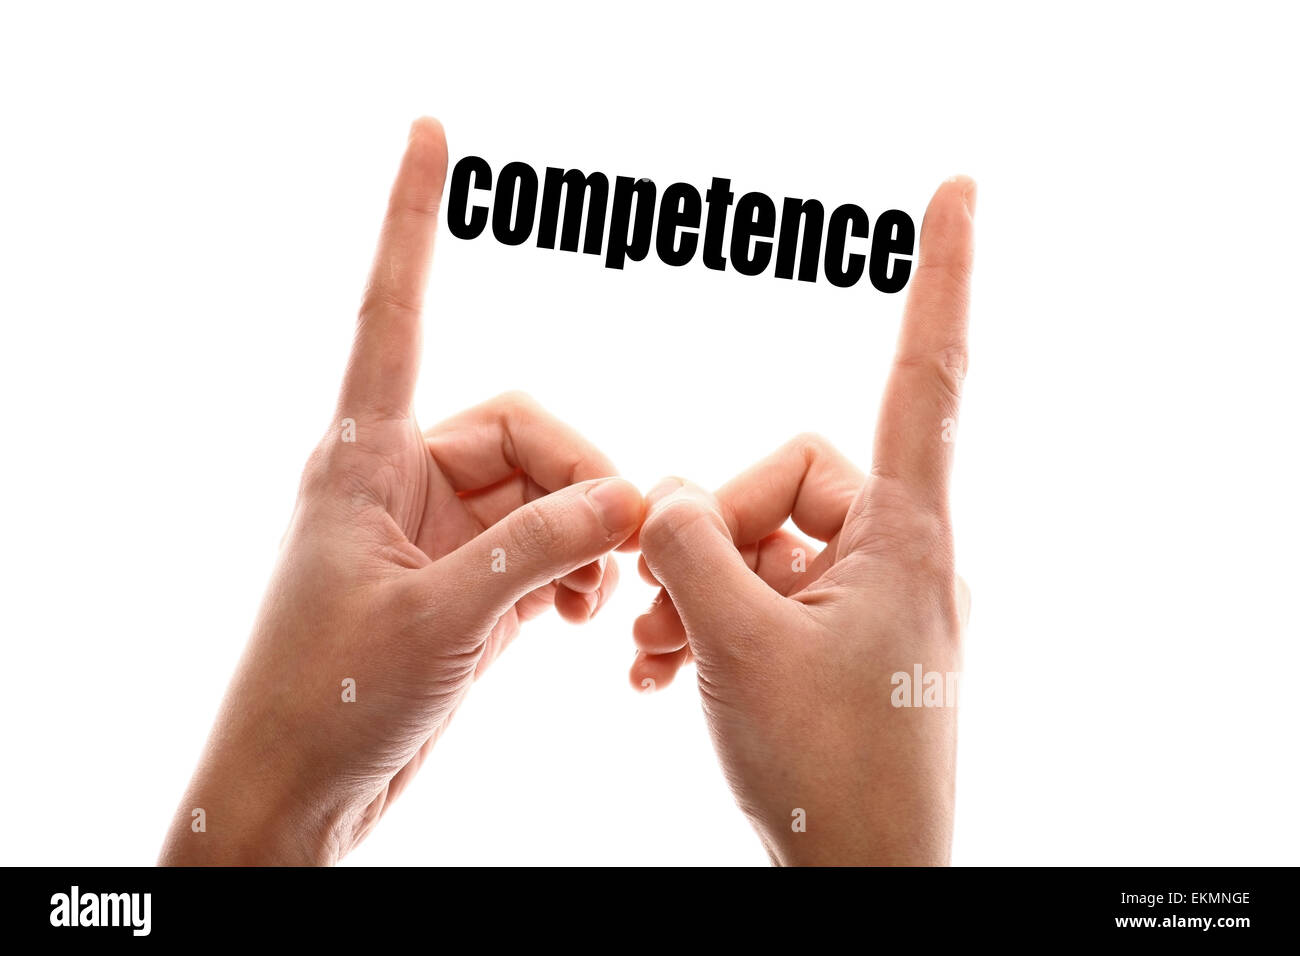 Color horizontal shot of two hands squeezing the word 'competence'. - Stock Image